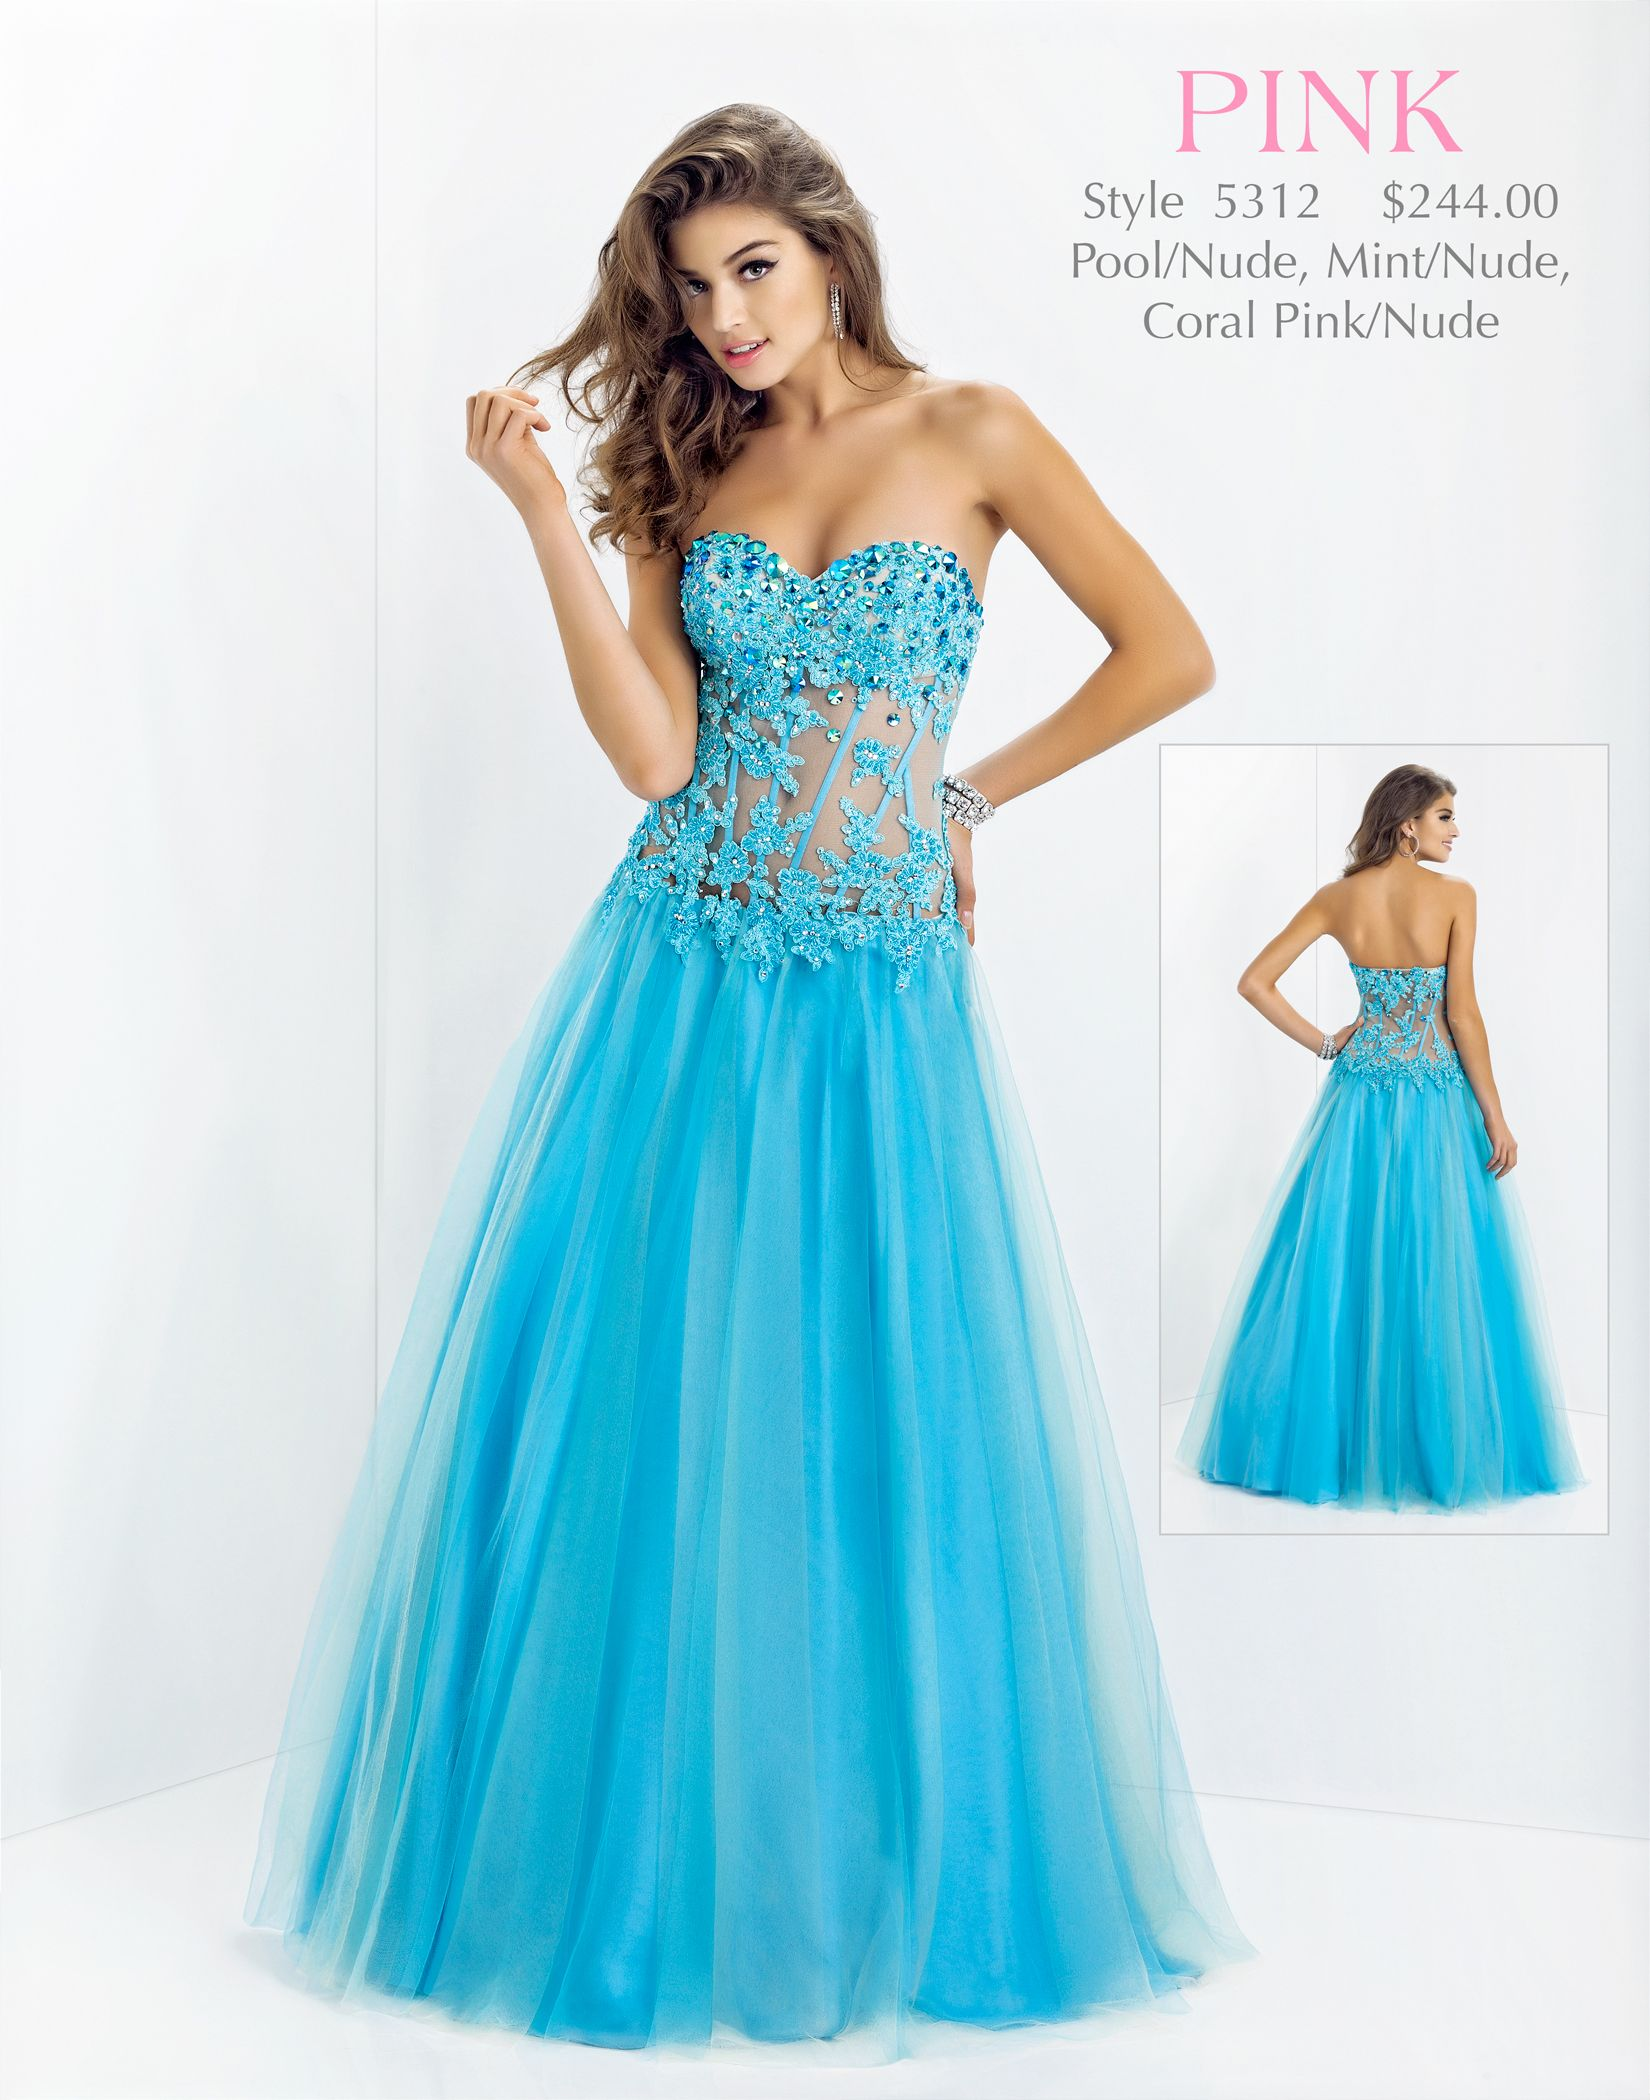 Pin by kellie taylor on homecomingprom ideas pinterest ball